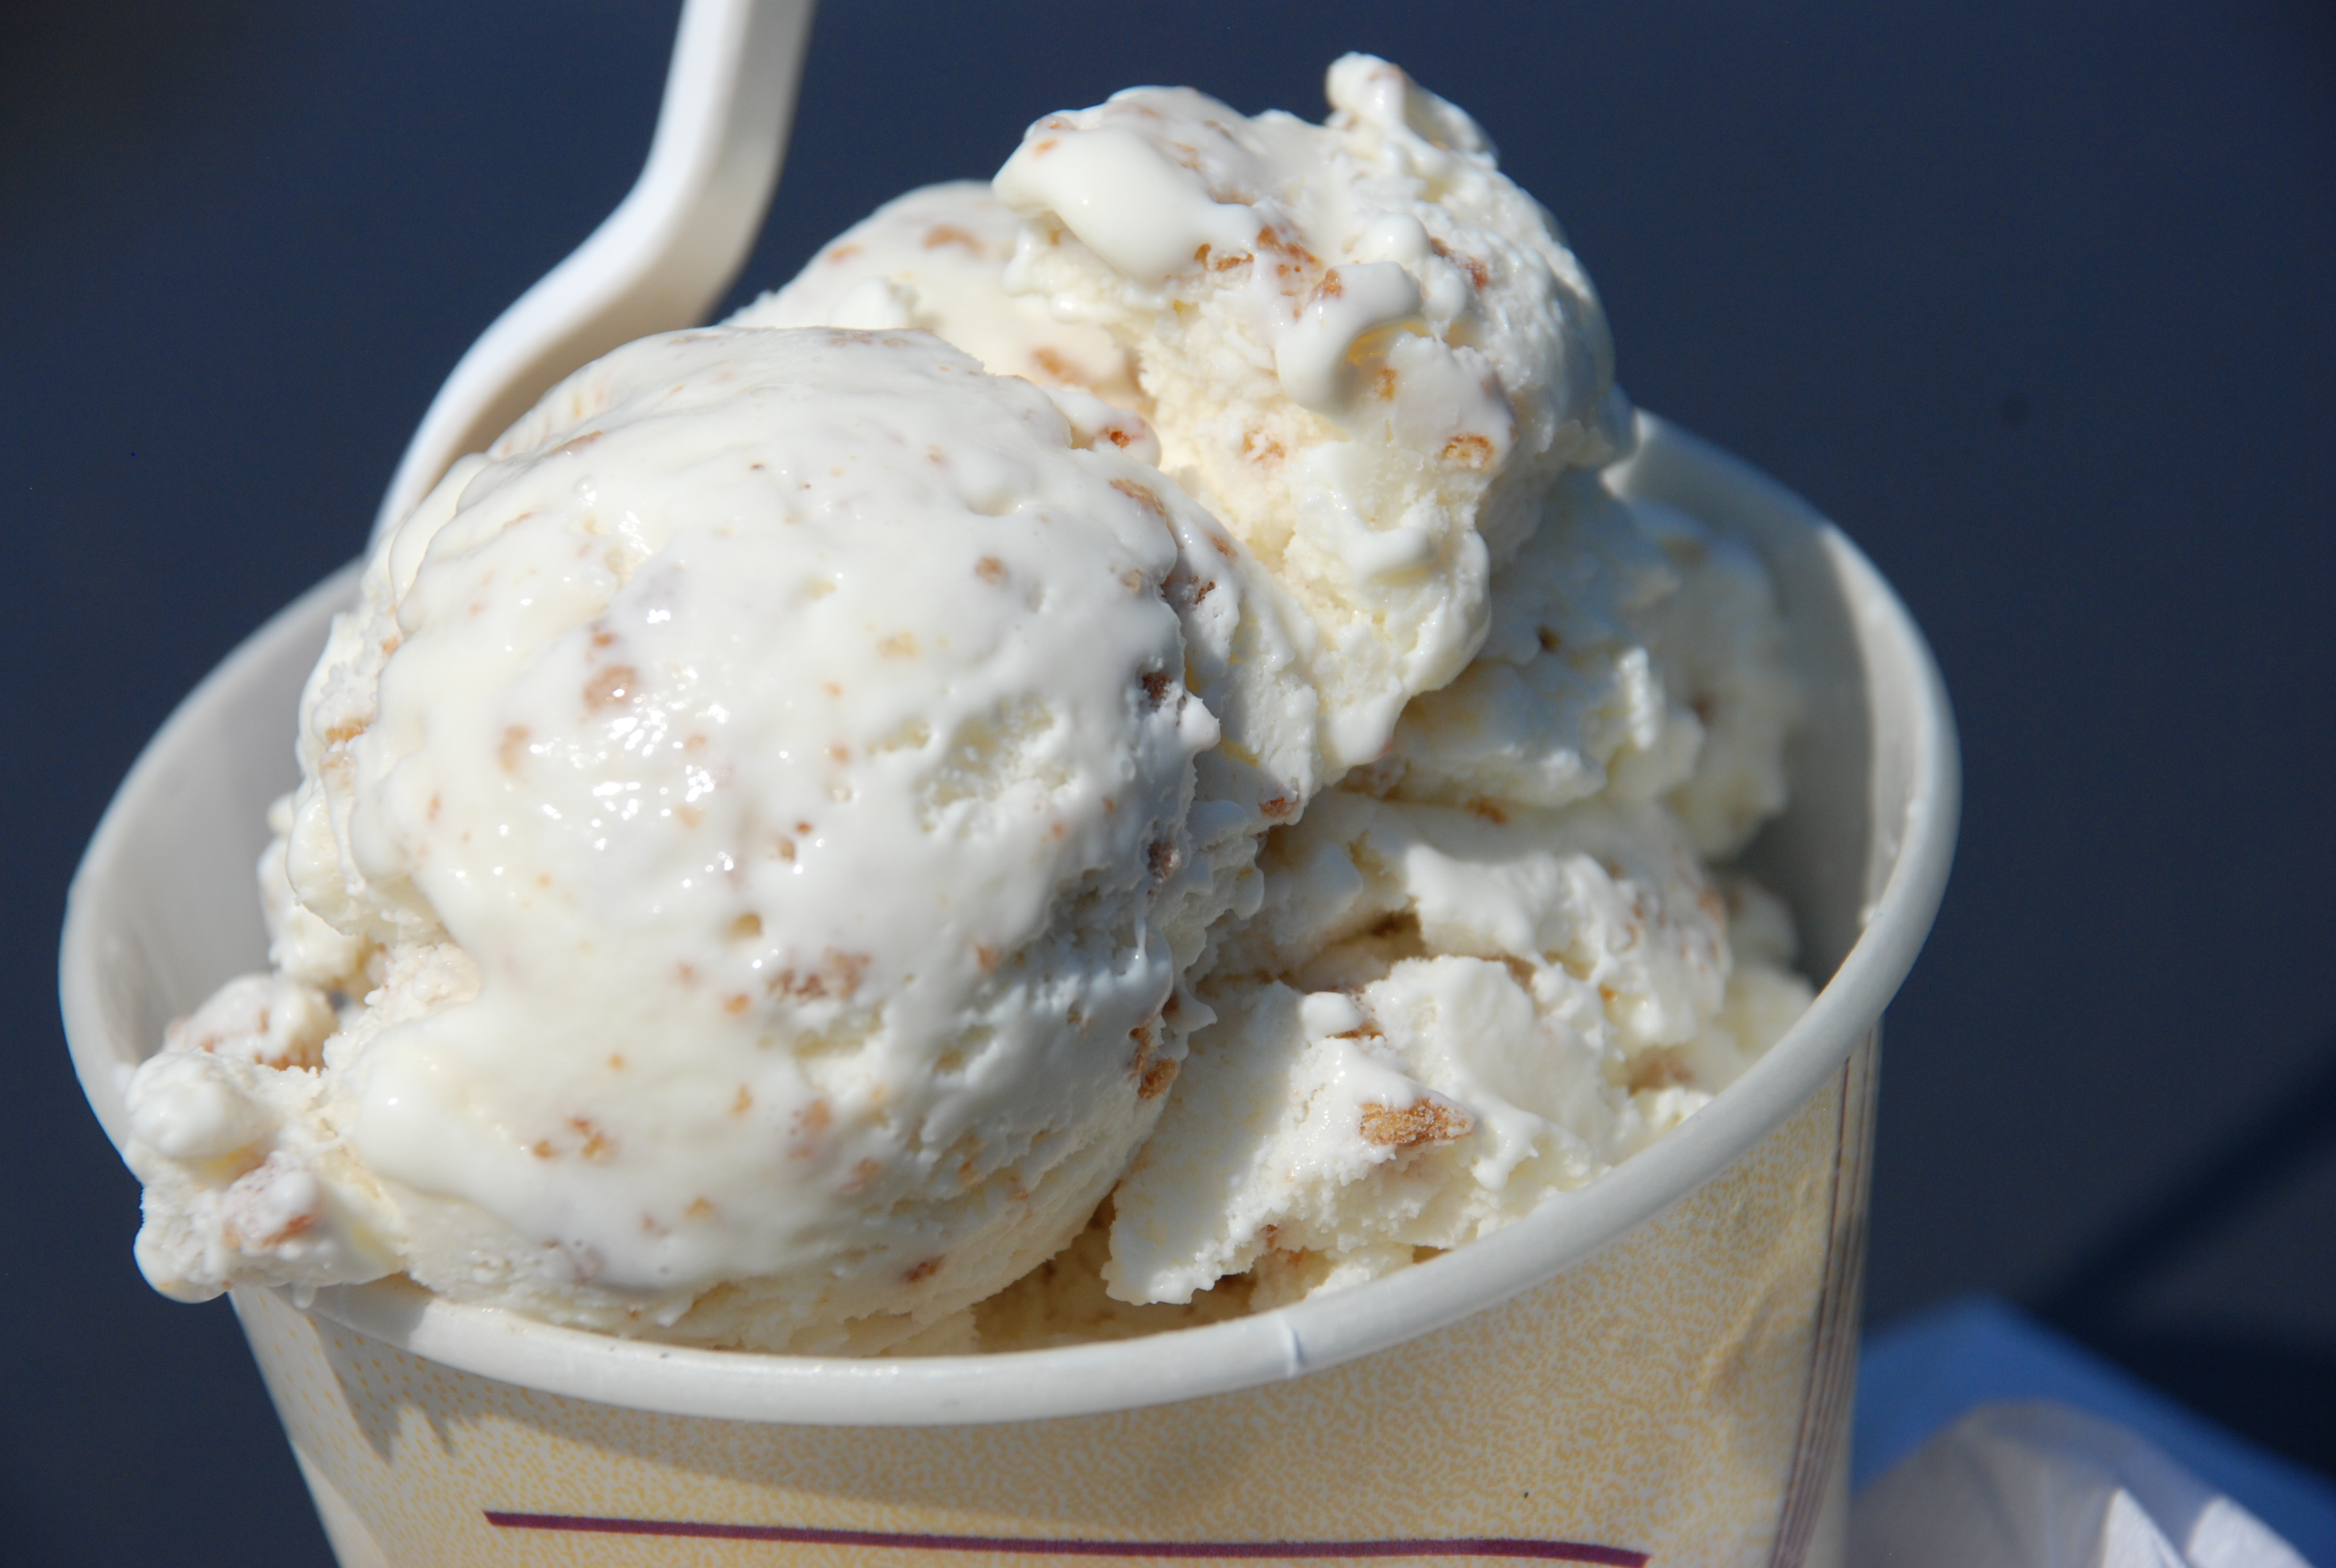 File:Grape-nut ice cream.jpg - Wikimedia Commons